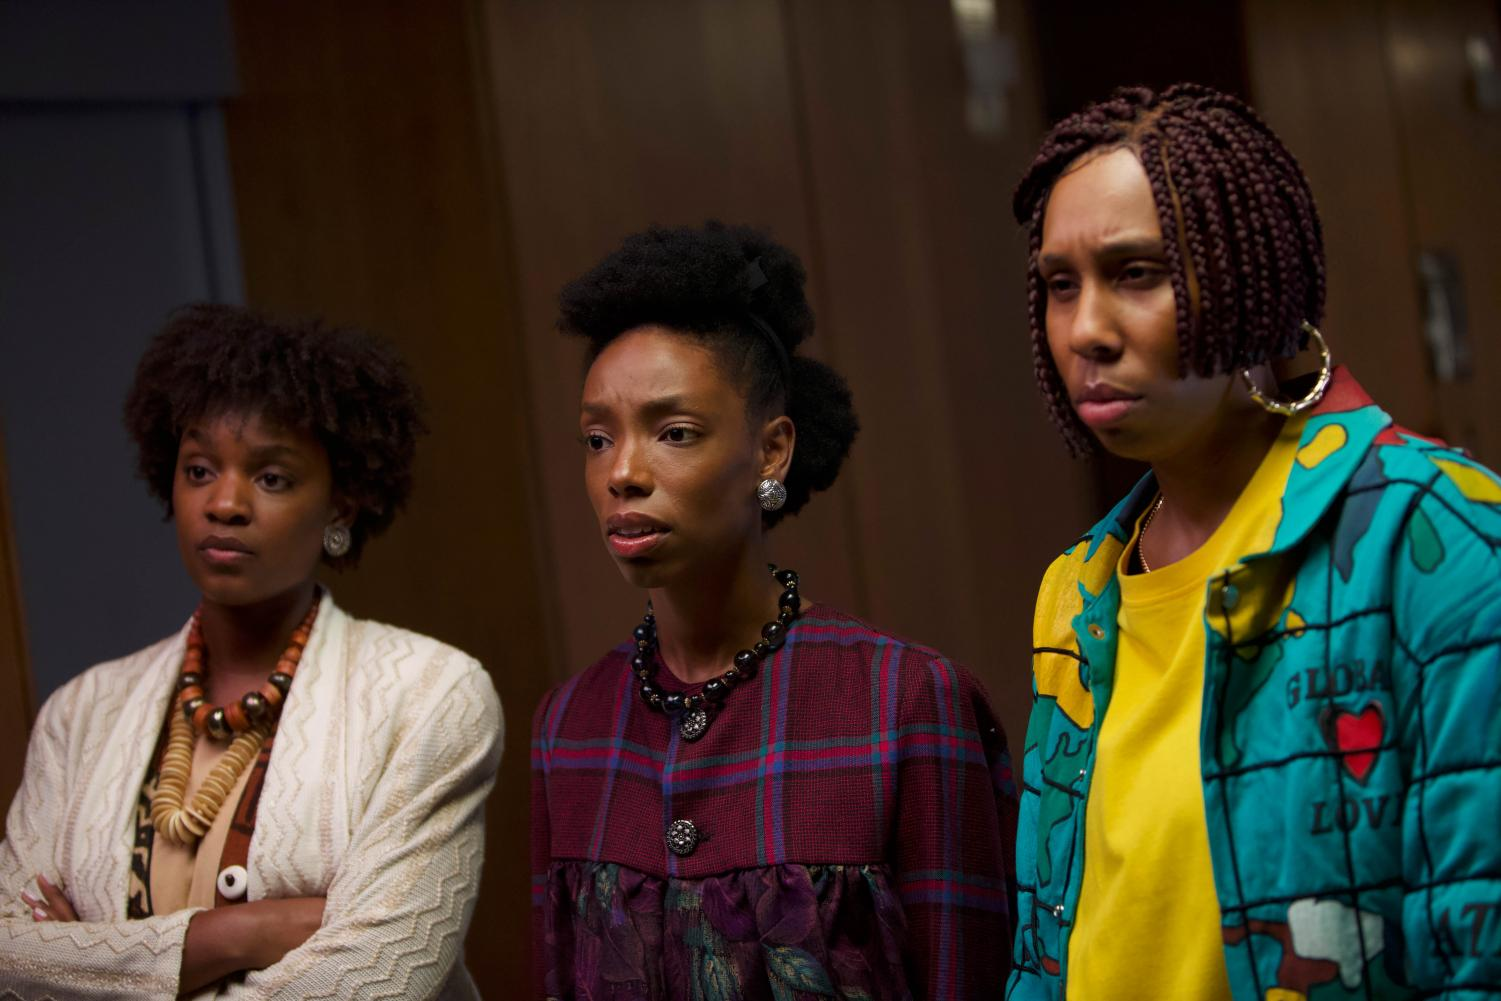 Yaani King Mondschein, Elle Lorraine, and Lena Waithe appears in Bad Hair by Justin Simien, an official selection of the Midnight program at the 2020 Sundance Film Festival. (Courtesy of Sundance Institute)